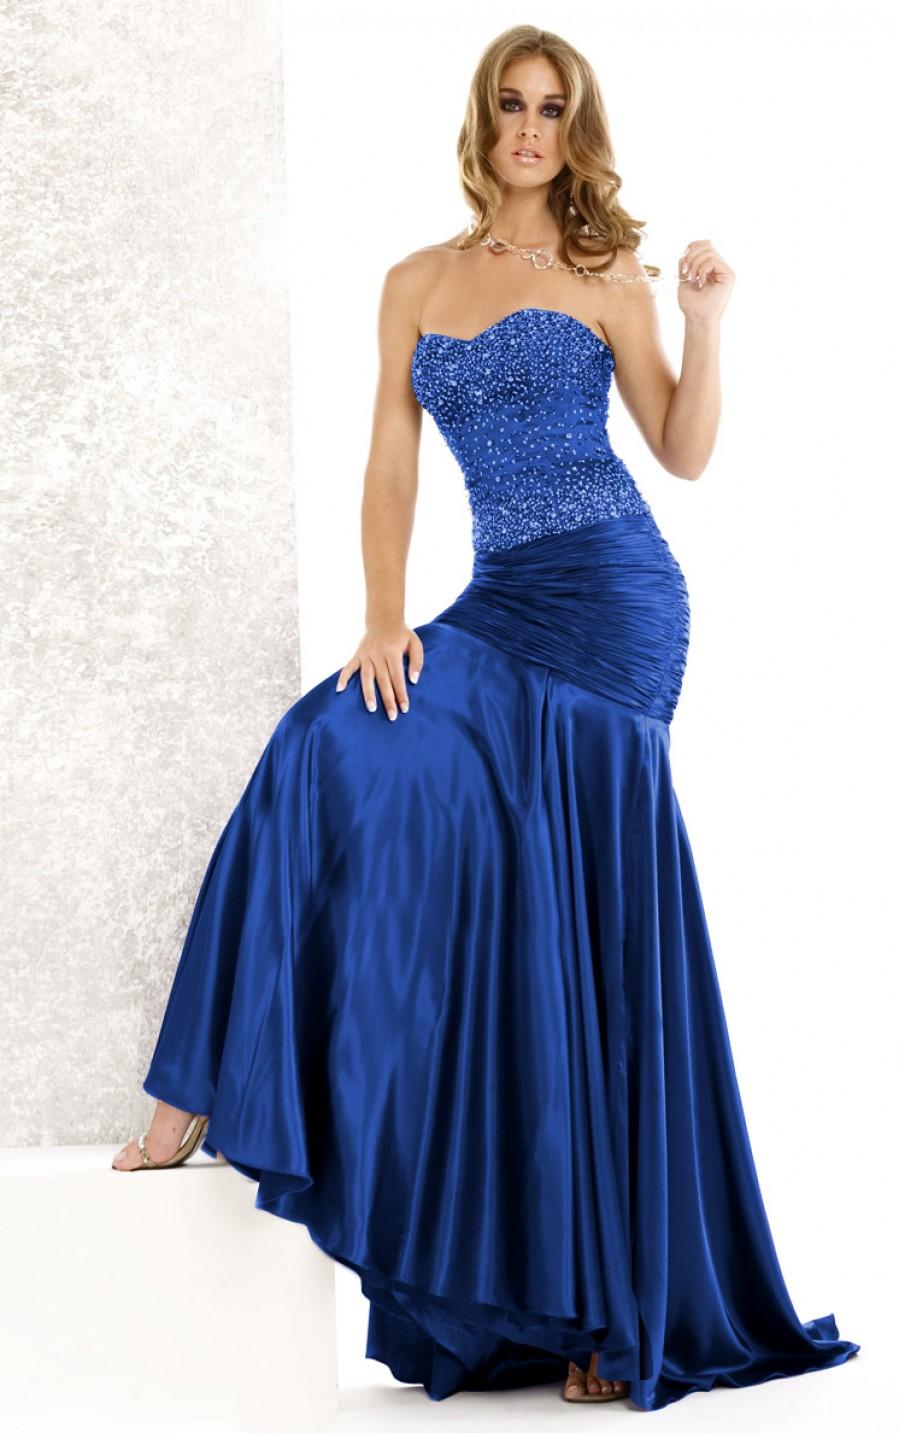 royal blue mermaid wedding dress with strapless neckline